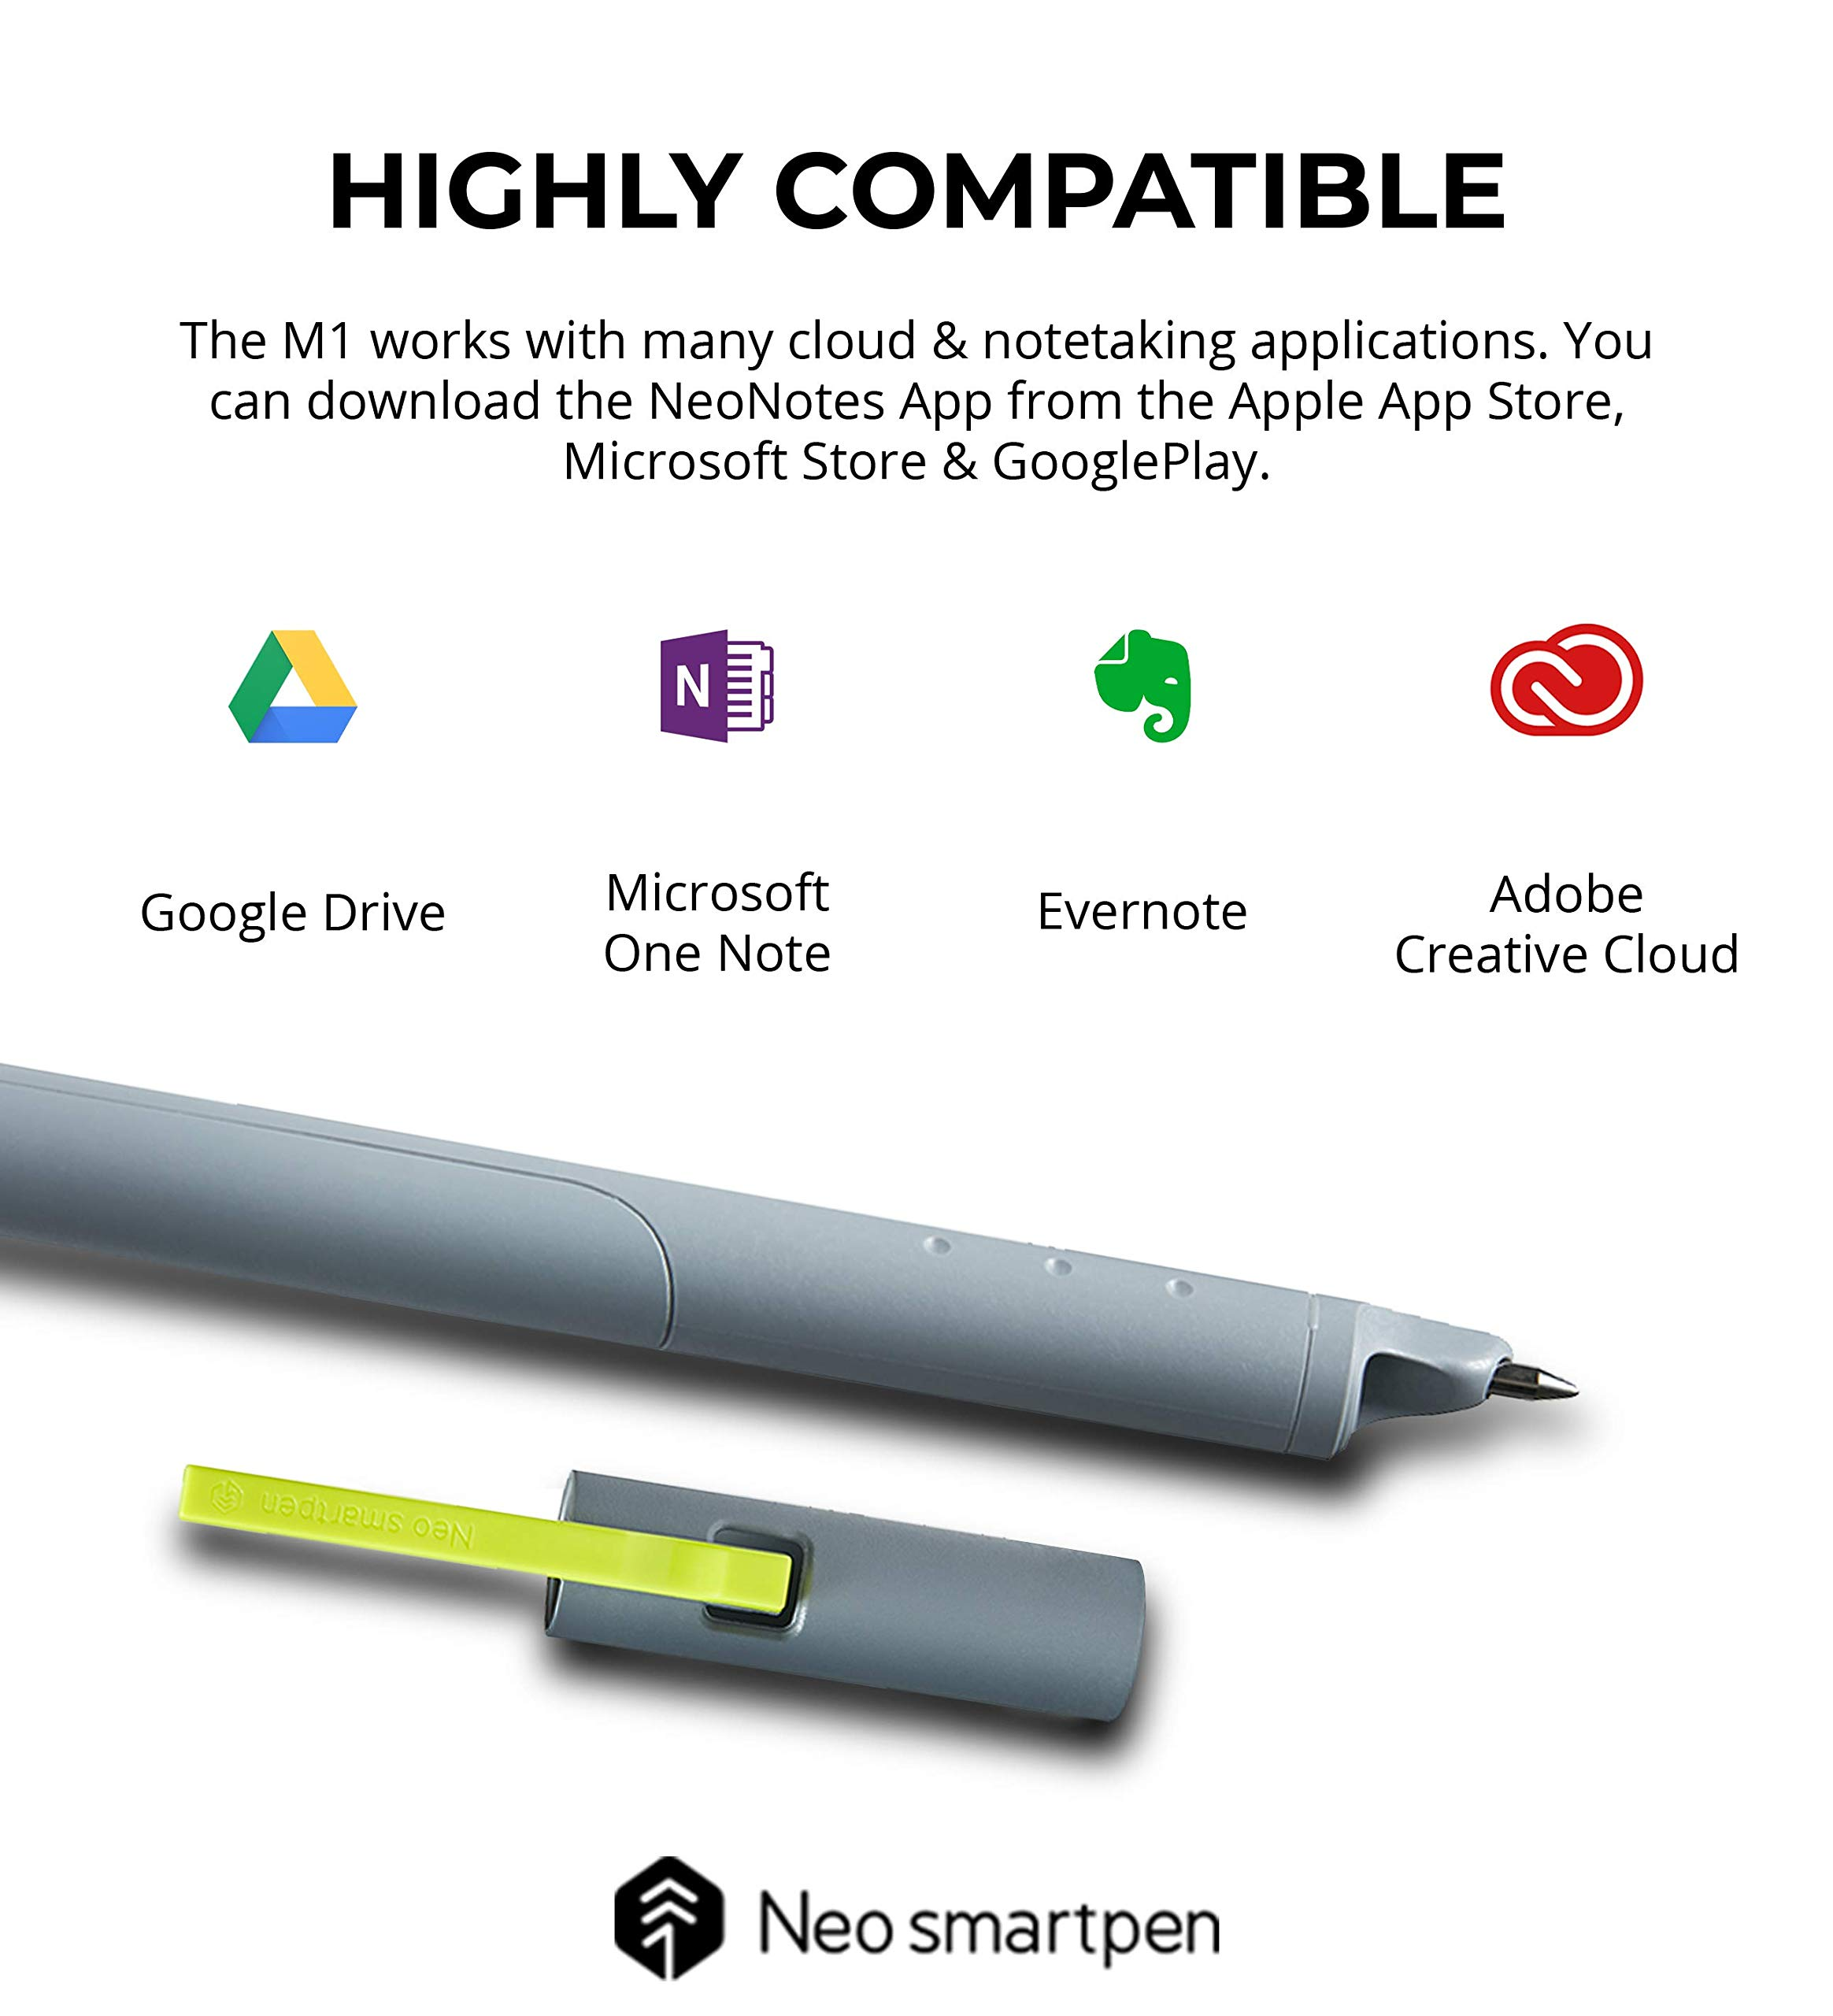 Additional Ink Refill and ADNA Stickers Includes Two A4 Sized College Ruled Notebooks Blue Dolphin Student Edition Bundle Livescribe Aegir Smartpen